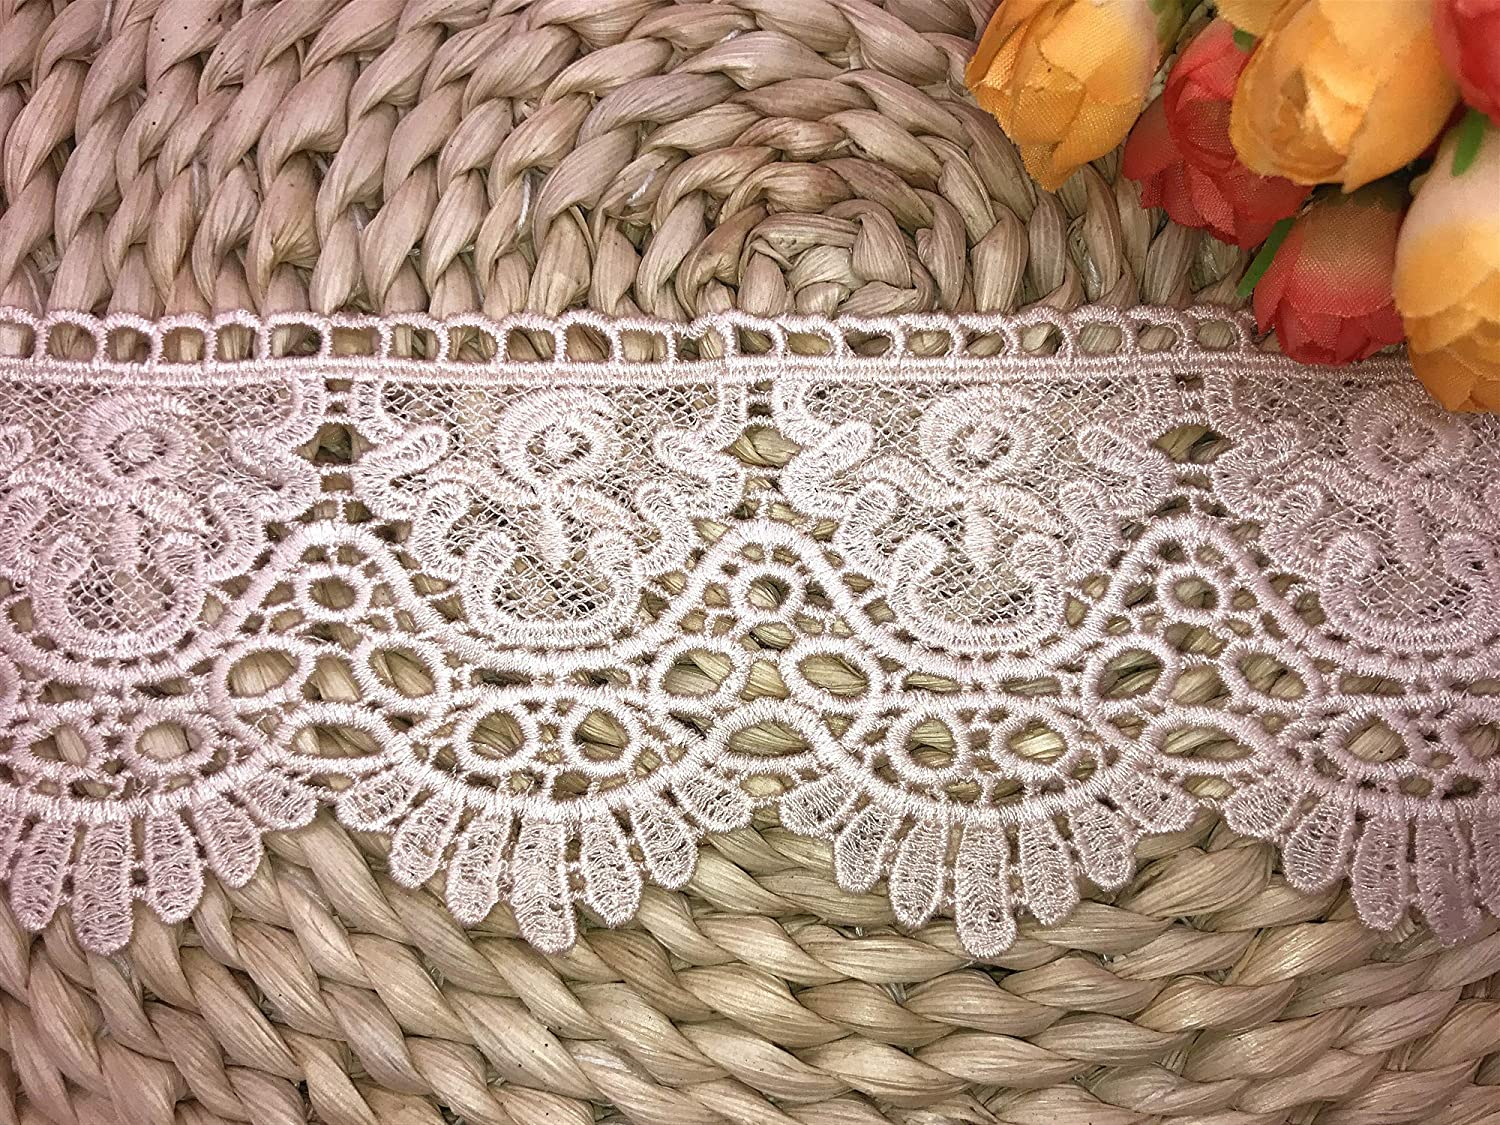 Black 2 Yards in one Package 9CM Width Europe Chips Pattern Inelastic Embroidery Lace Trim,Curtain Tablecloth Slipcover Bridal DIY Clothing/Accessories.